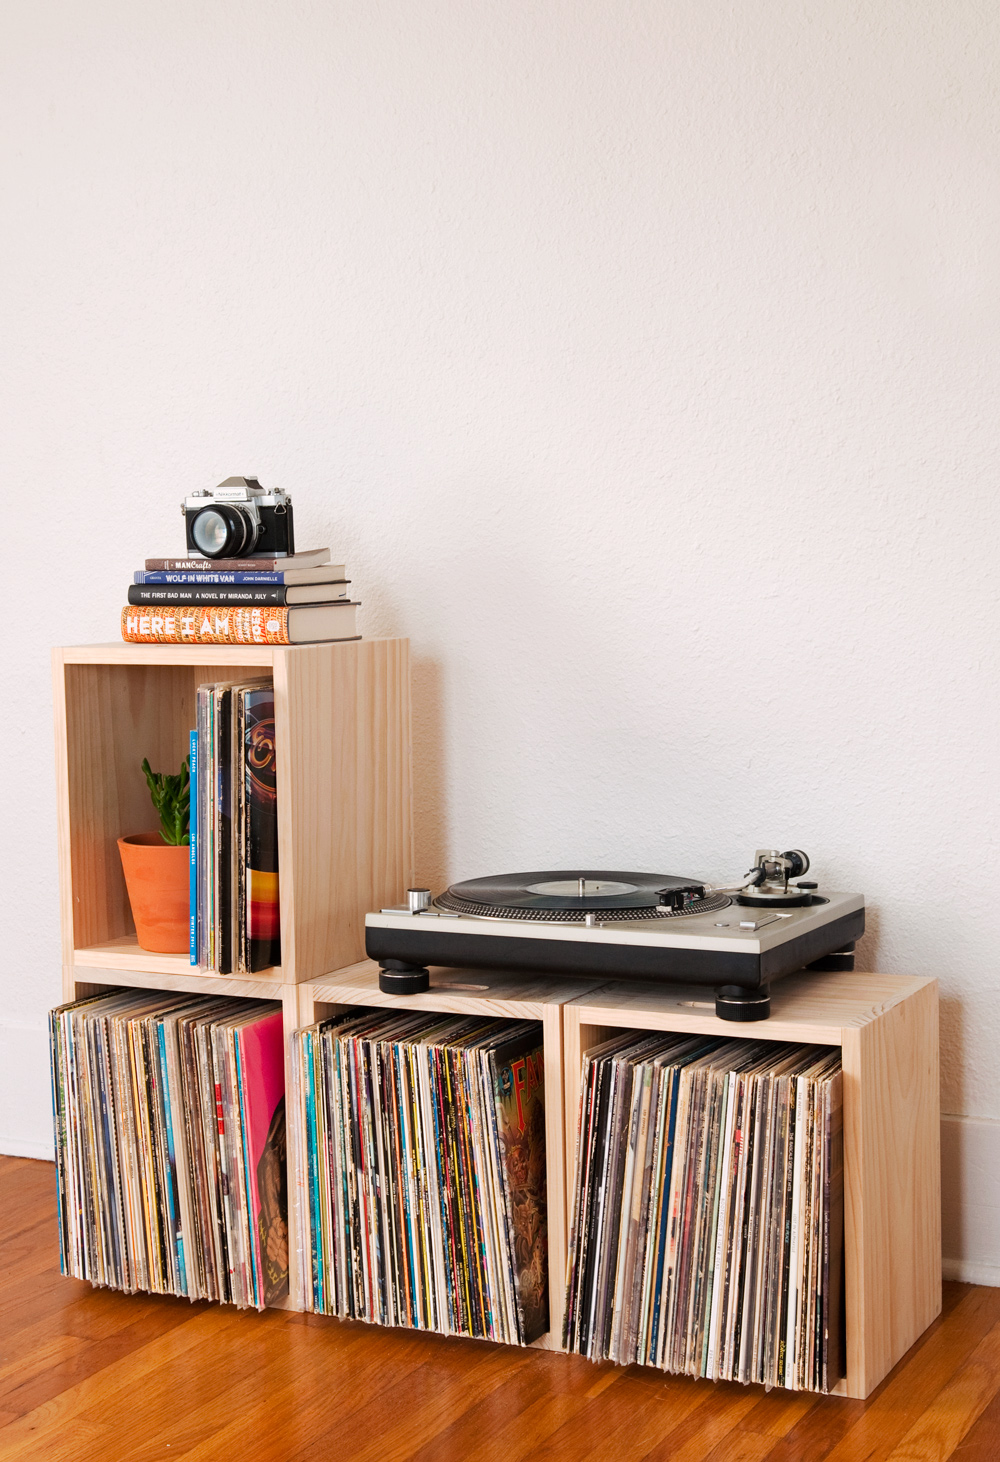 Http%3a%2f%2fassets.manmadediy.com%2fphotos%2f30490%2fhow to stacking storage crates vinyl records feature 2original